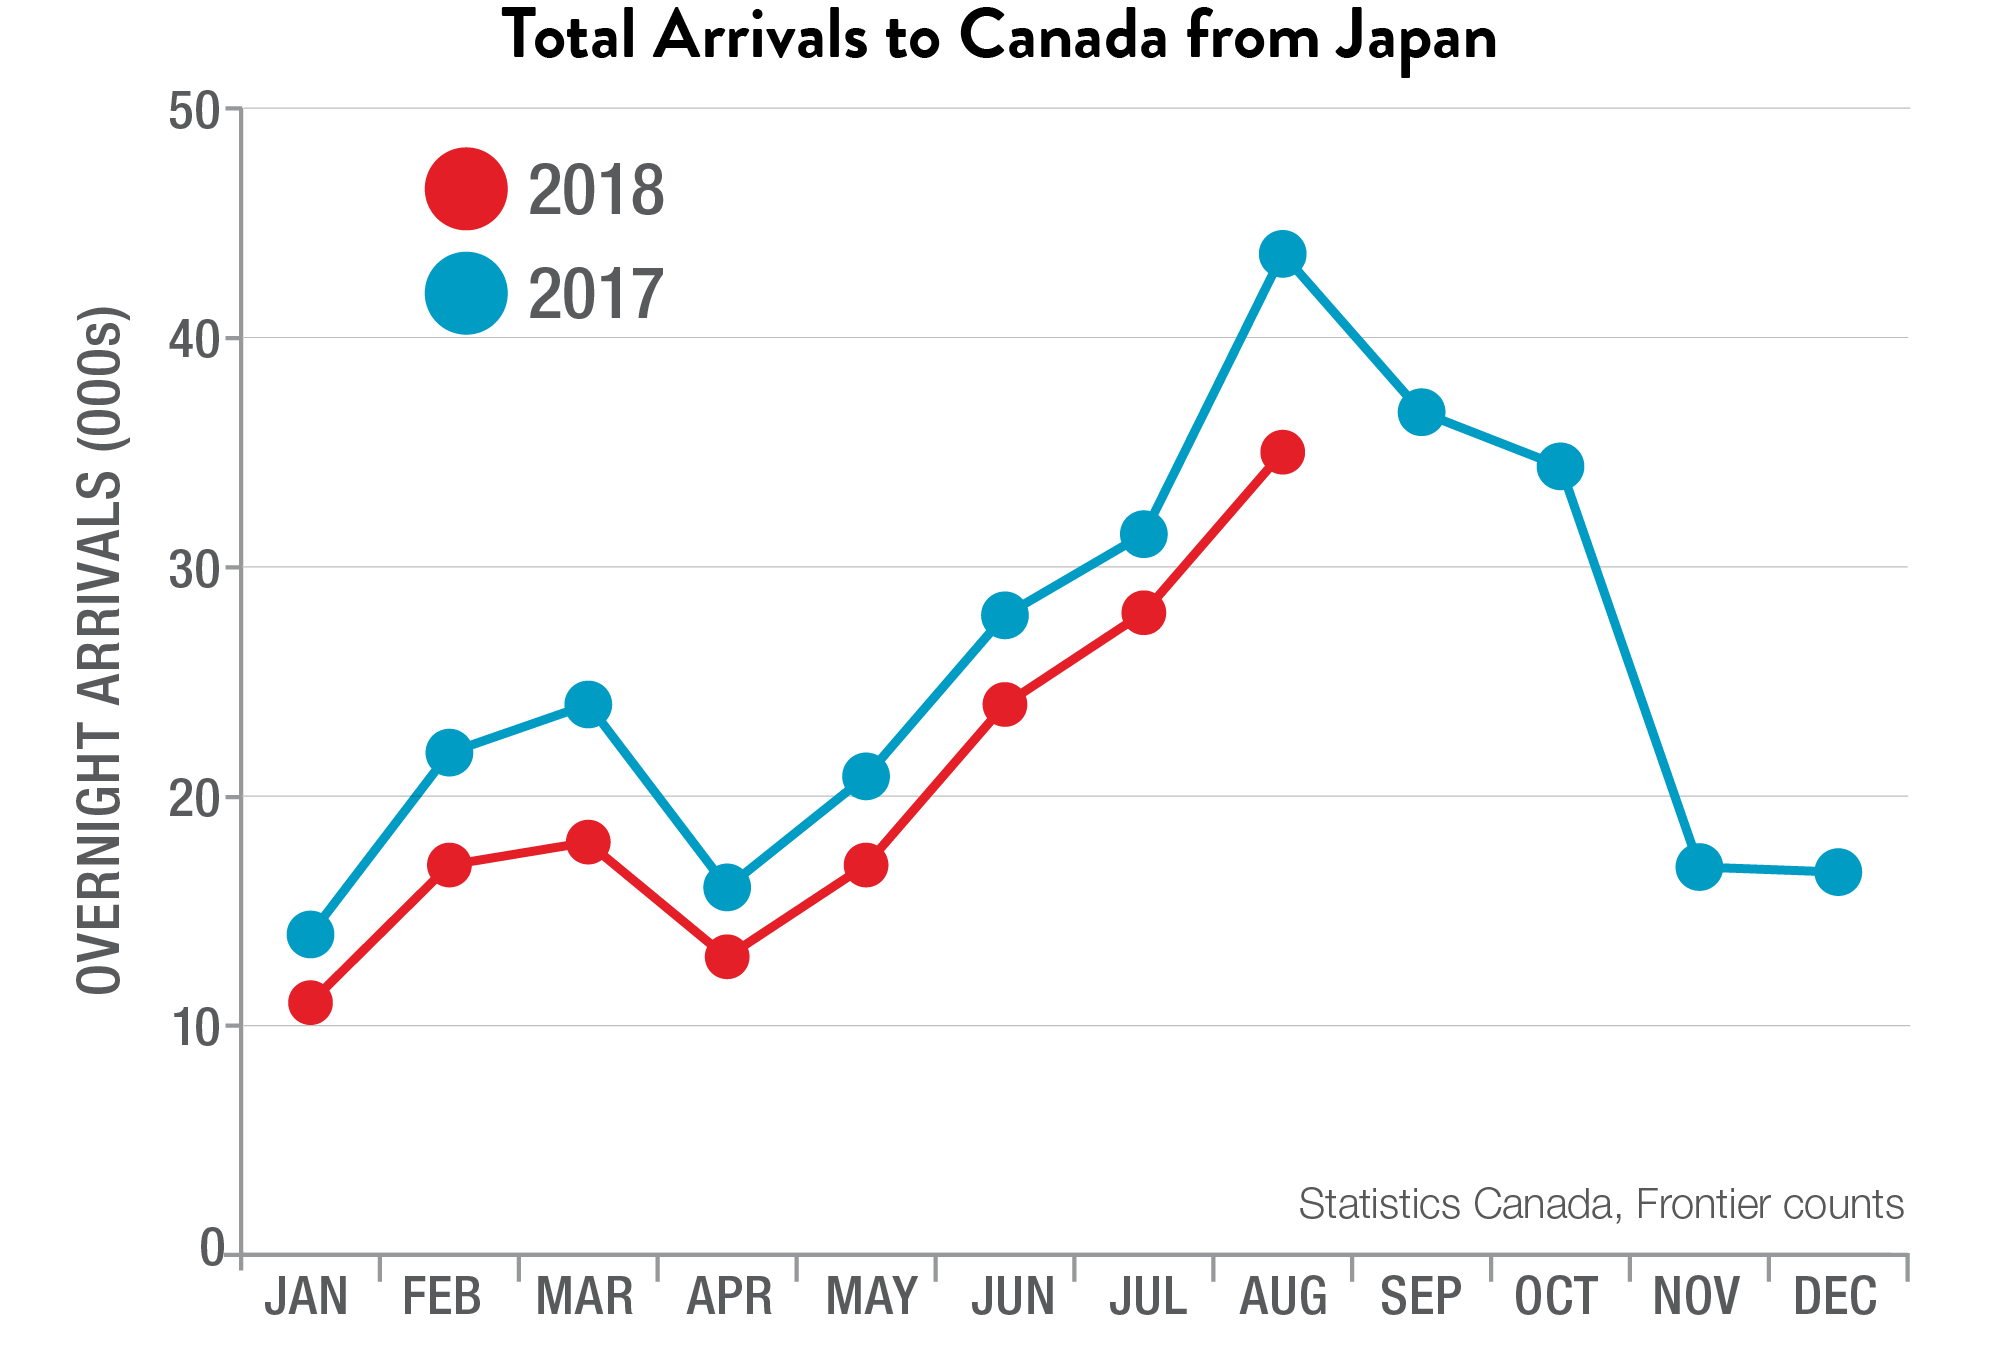 Total Arrivals to Canada from Japan